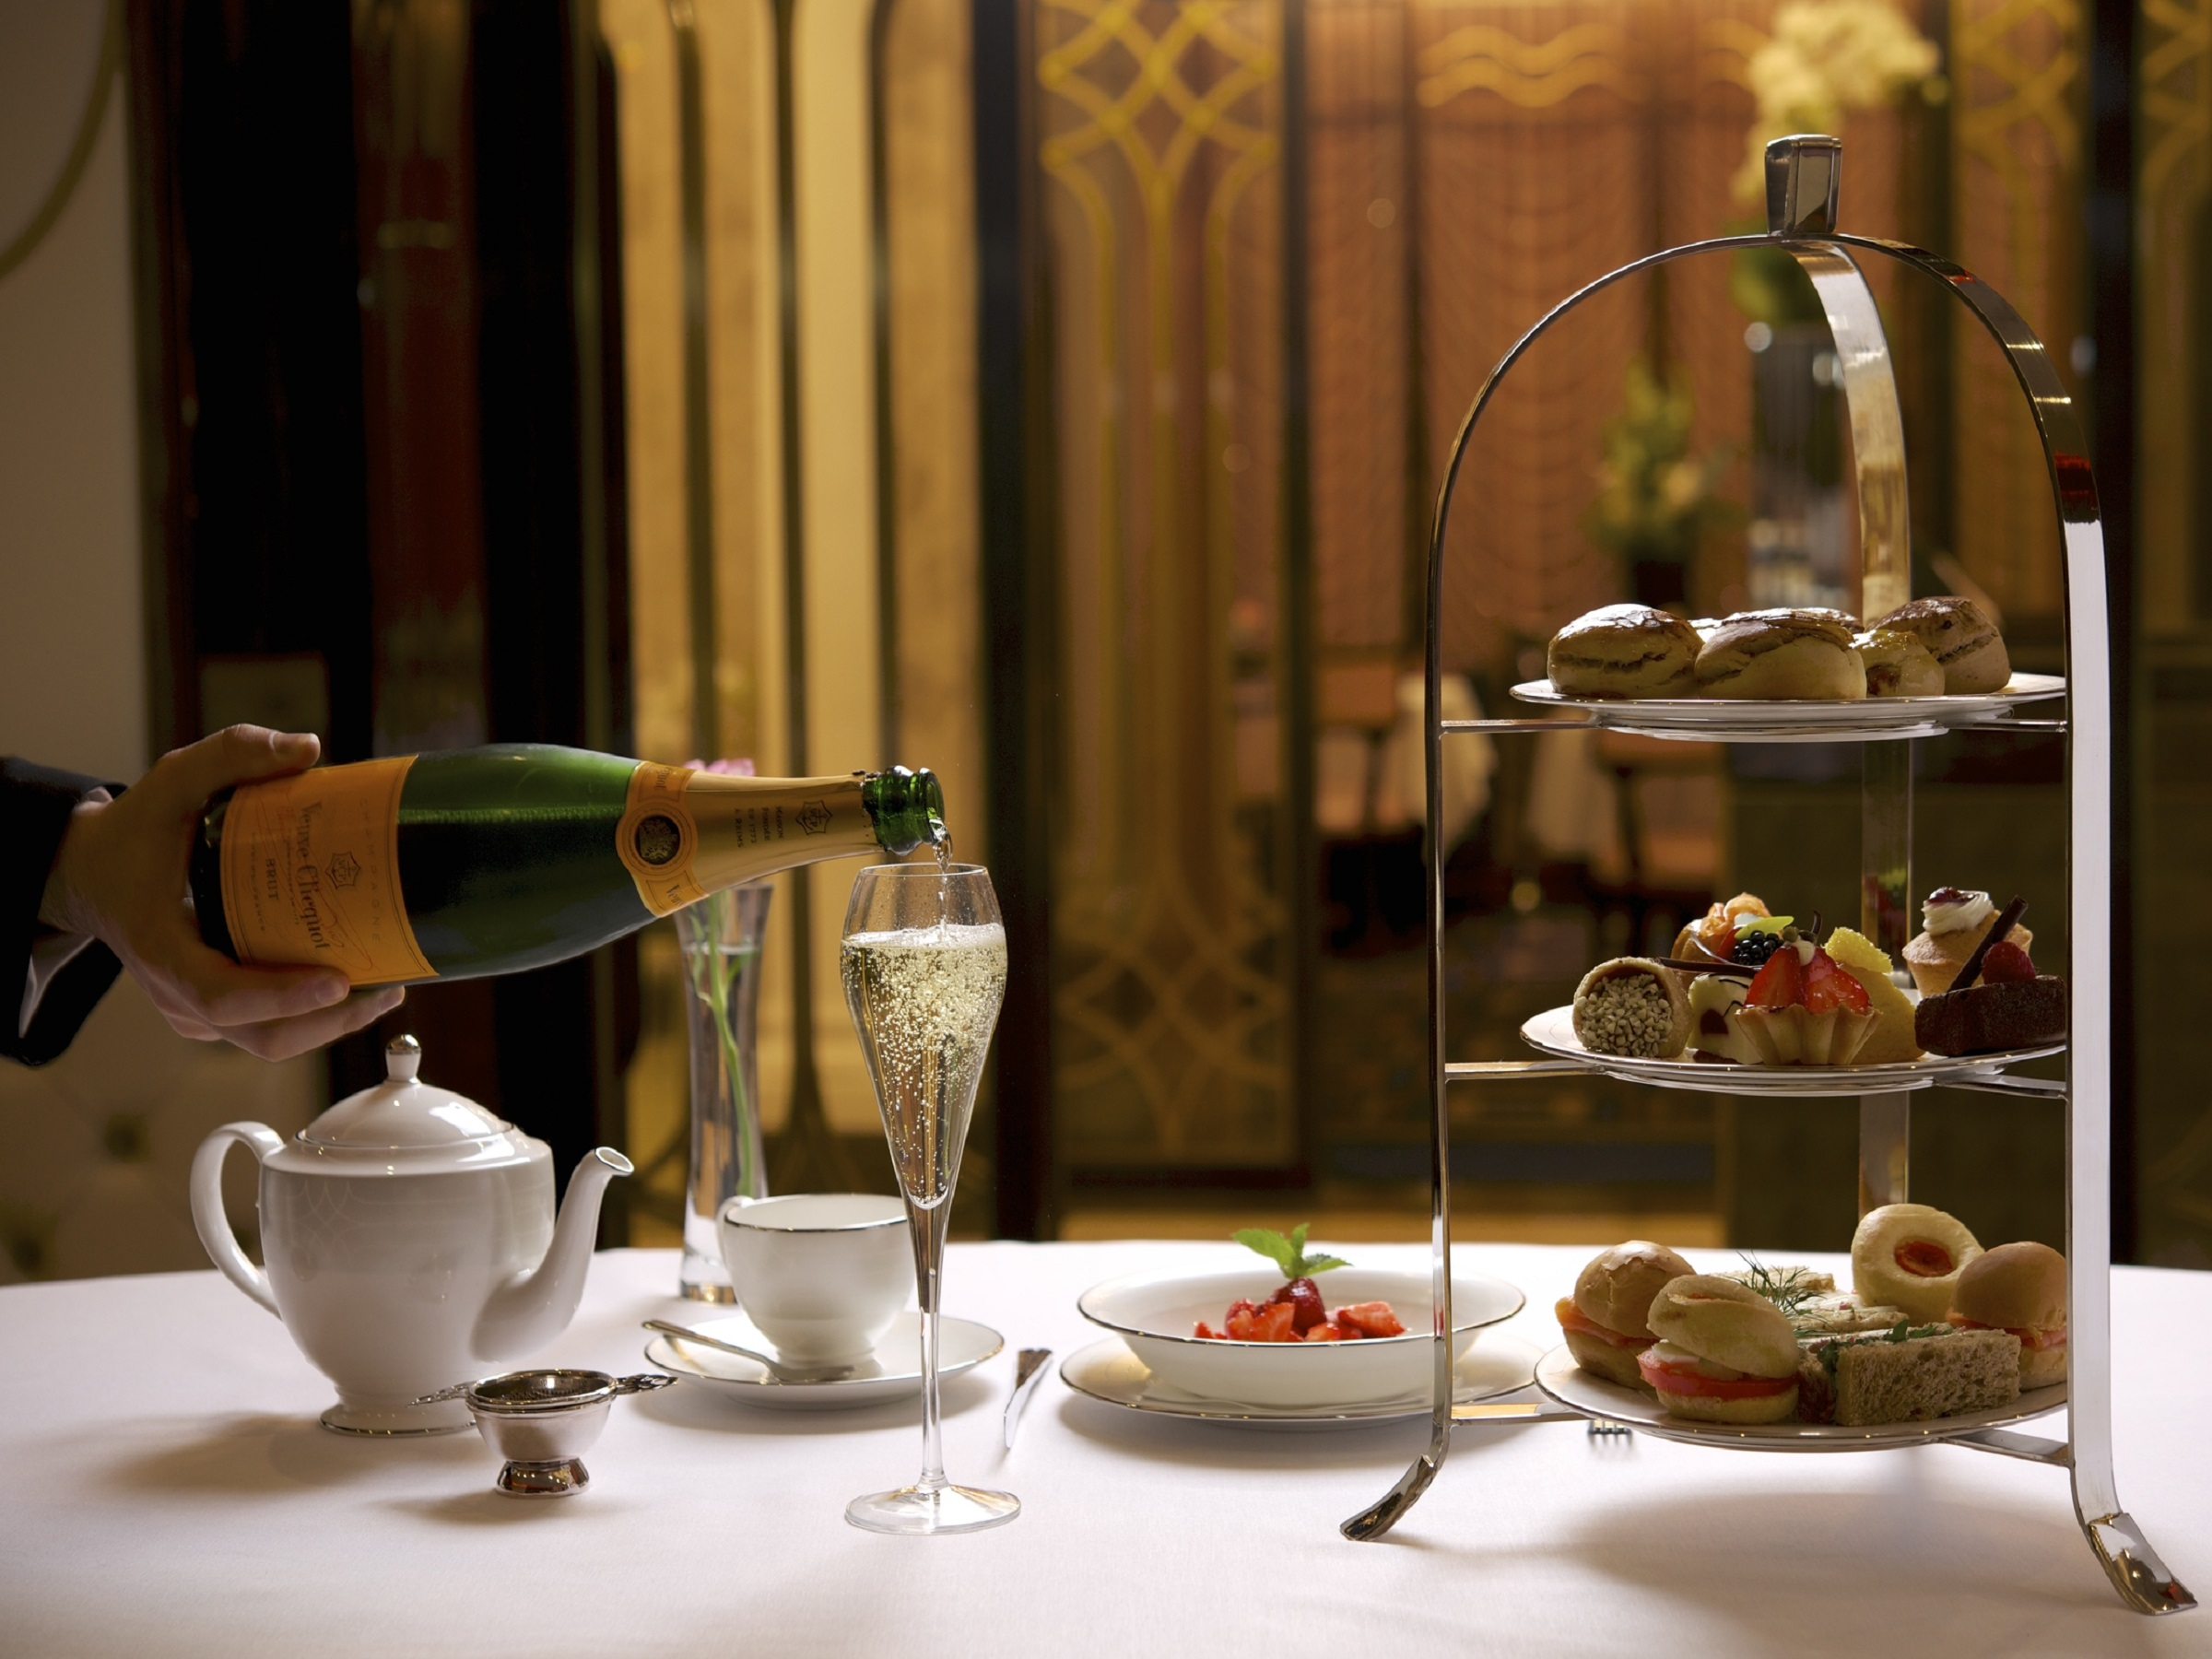 Image of Afternoon Tea at The Wellesley